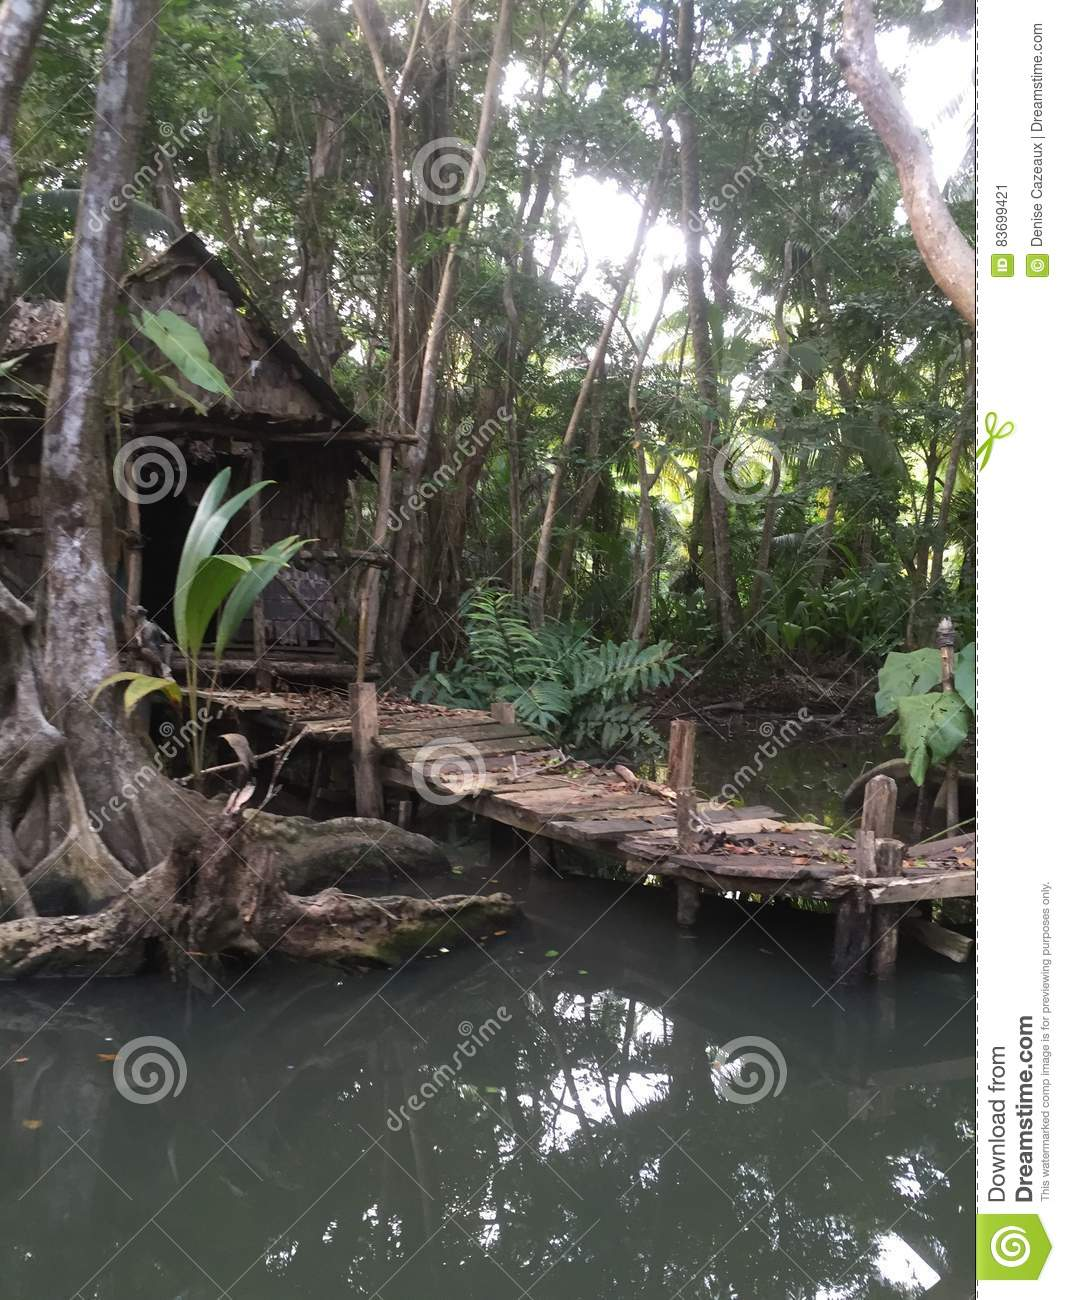 Dominica Water- Set for pirates of the Caribbean